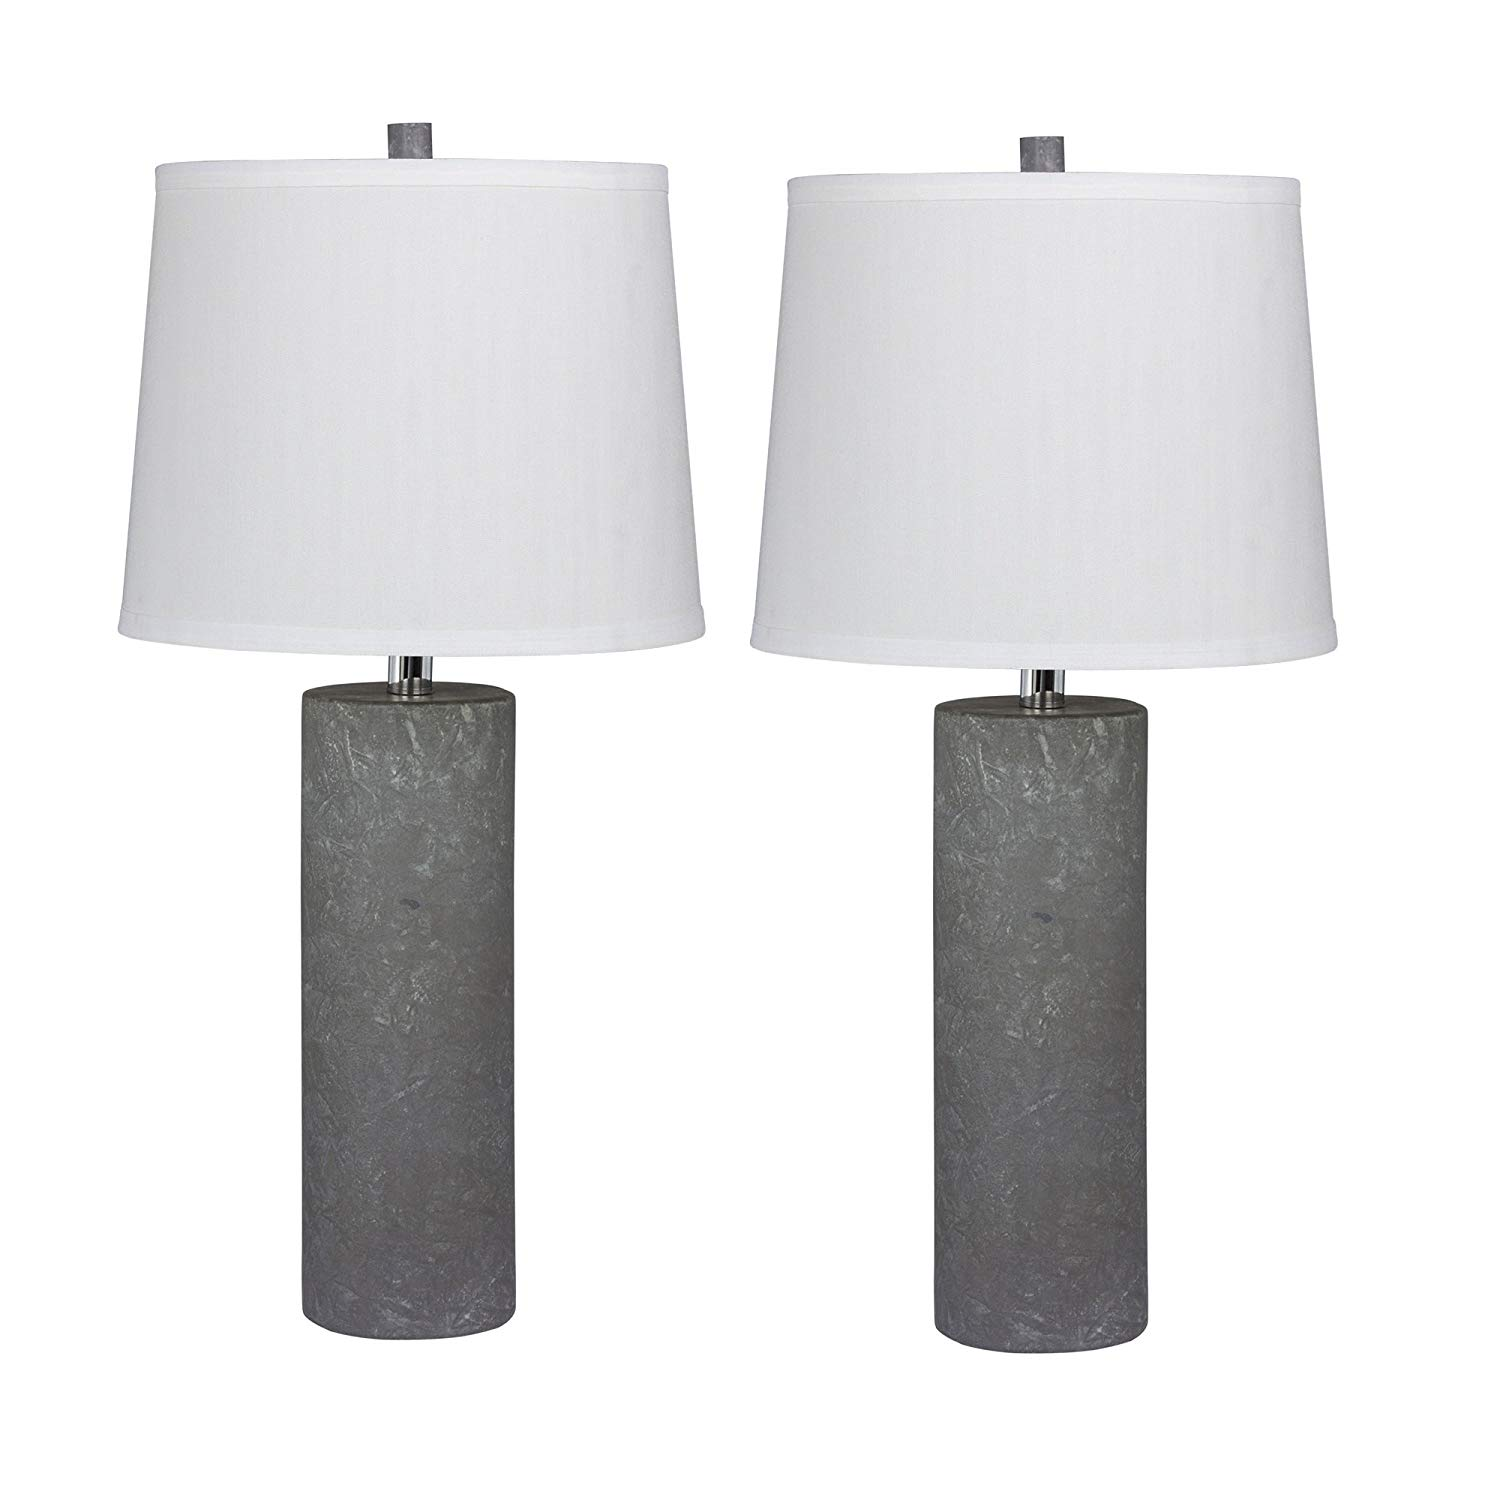 Cheap Contemporary Table Lamps Find Contemporary Table